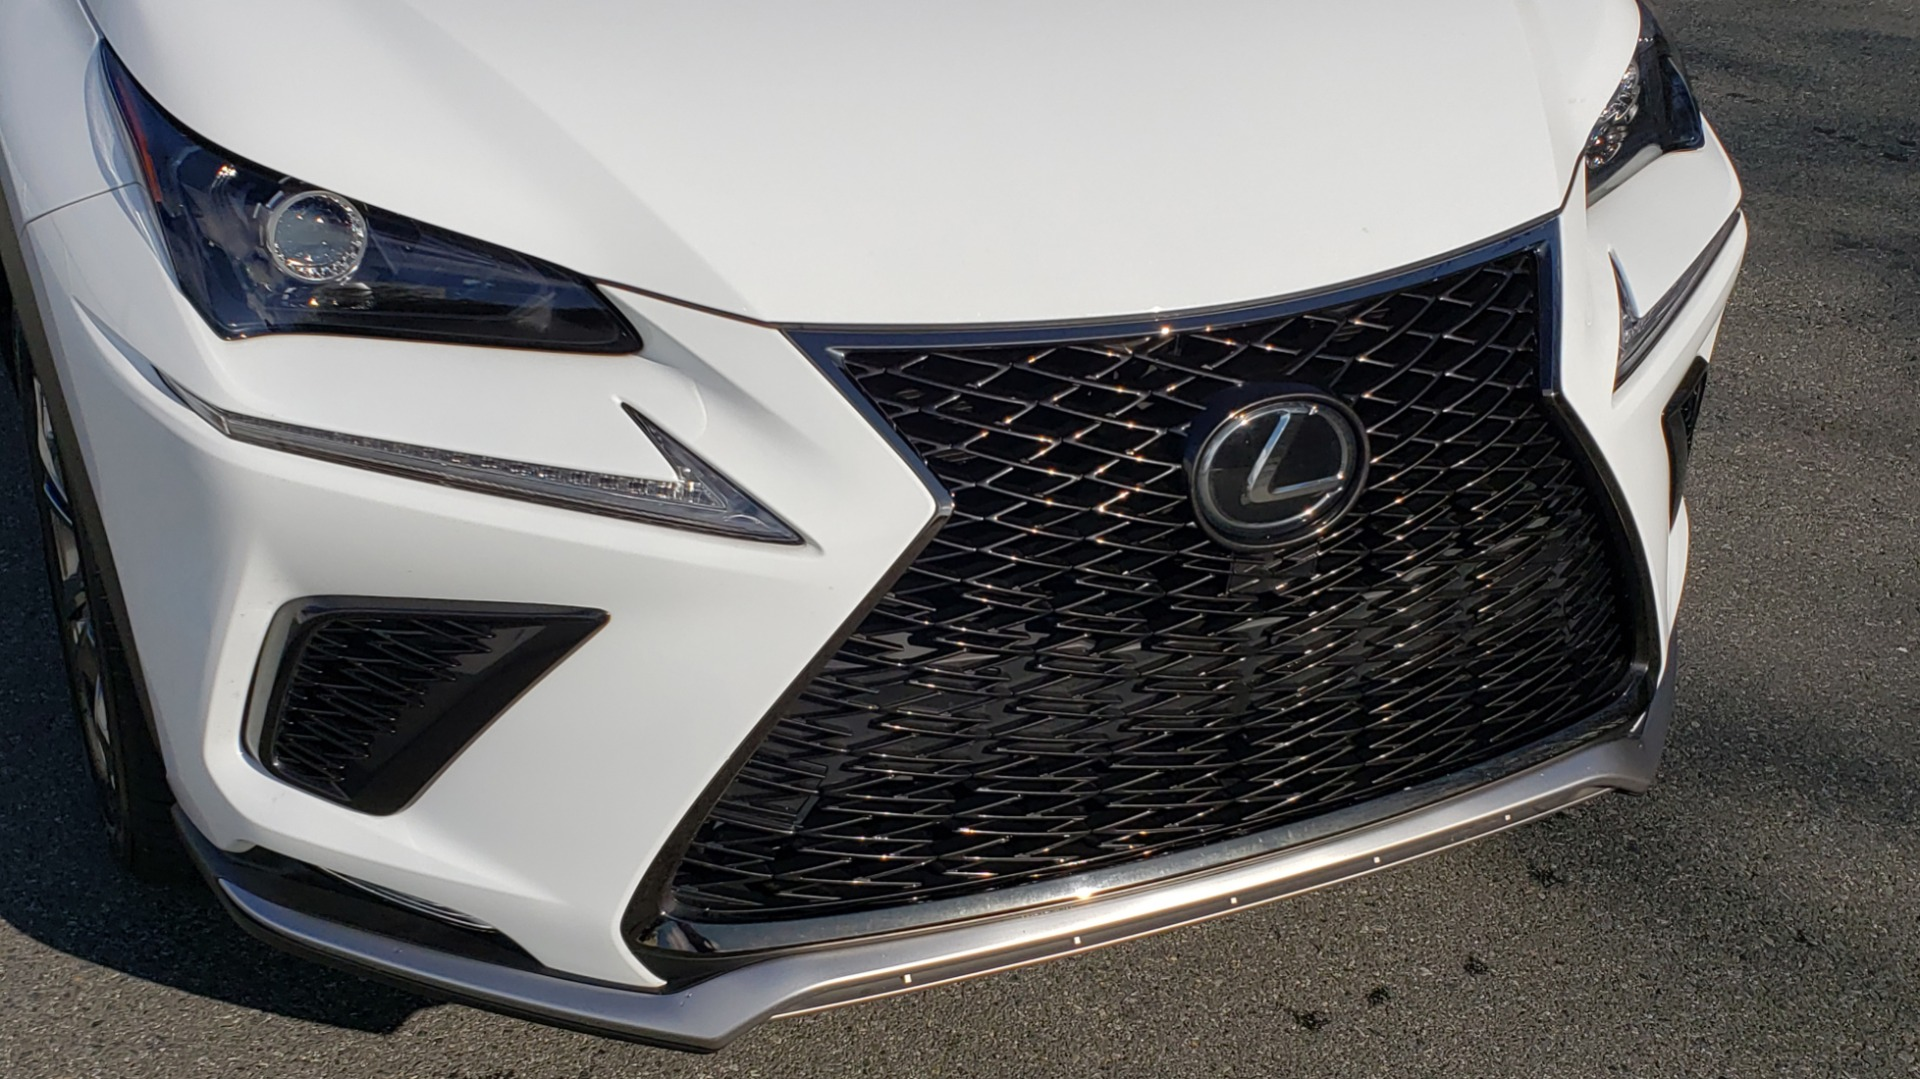 Used 2019 Lexus NX 300 F-SPORT / 2.0L TURBO / LEATHER / 18IN WHEELS / REARVIEW for sale Sold at Formula Imports in Charlotte NC 28227 28